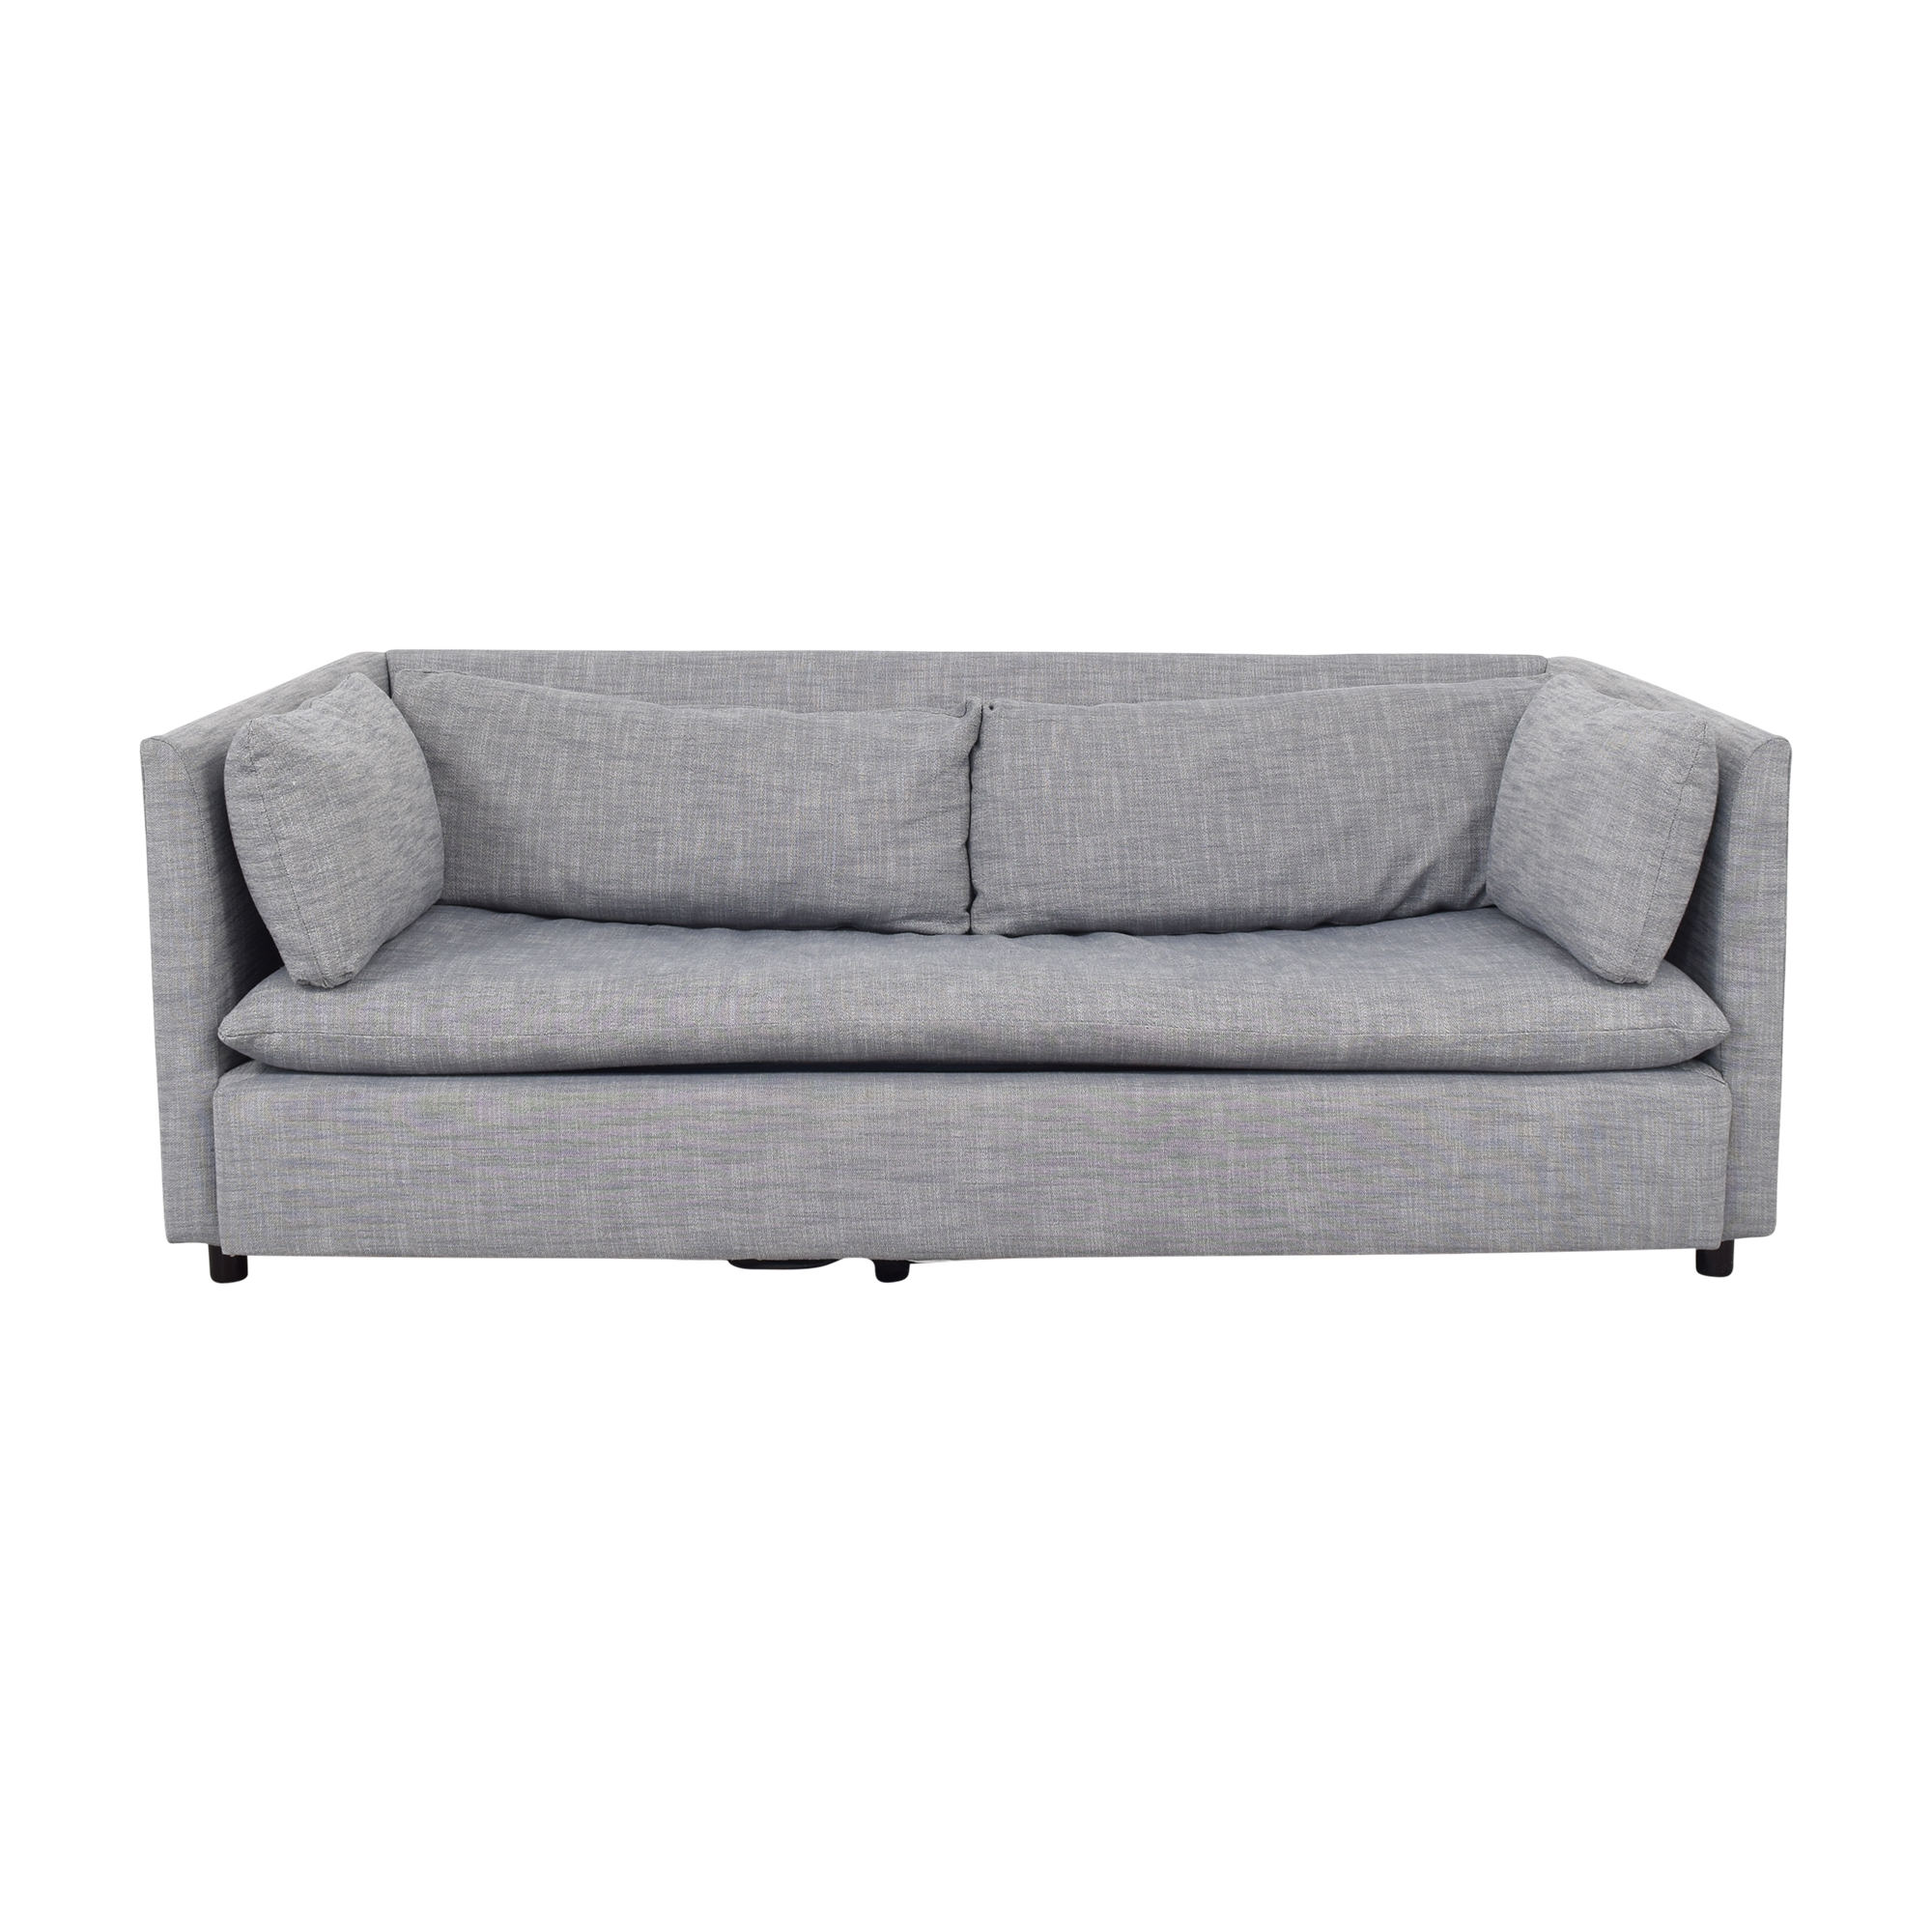 West Elm Shelter Queen Sleeper Sofa West Elm